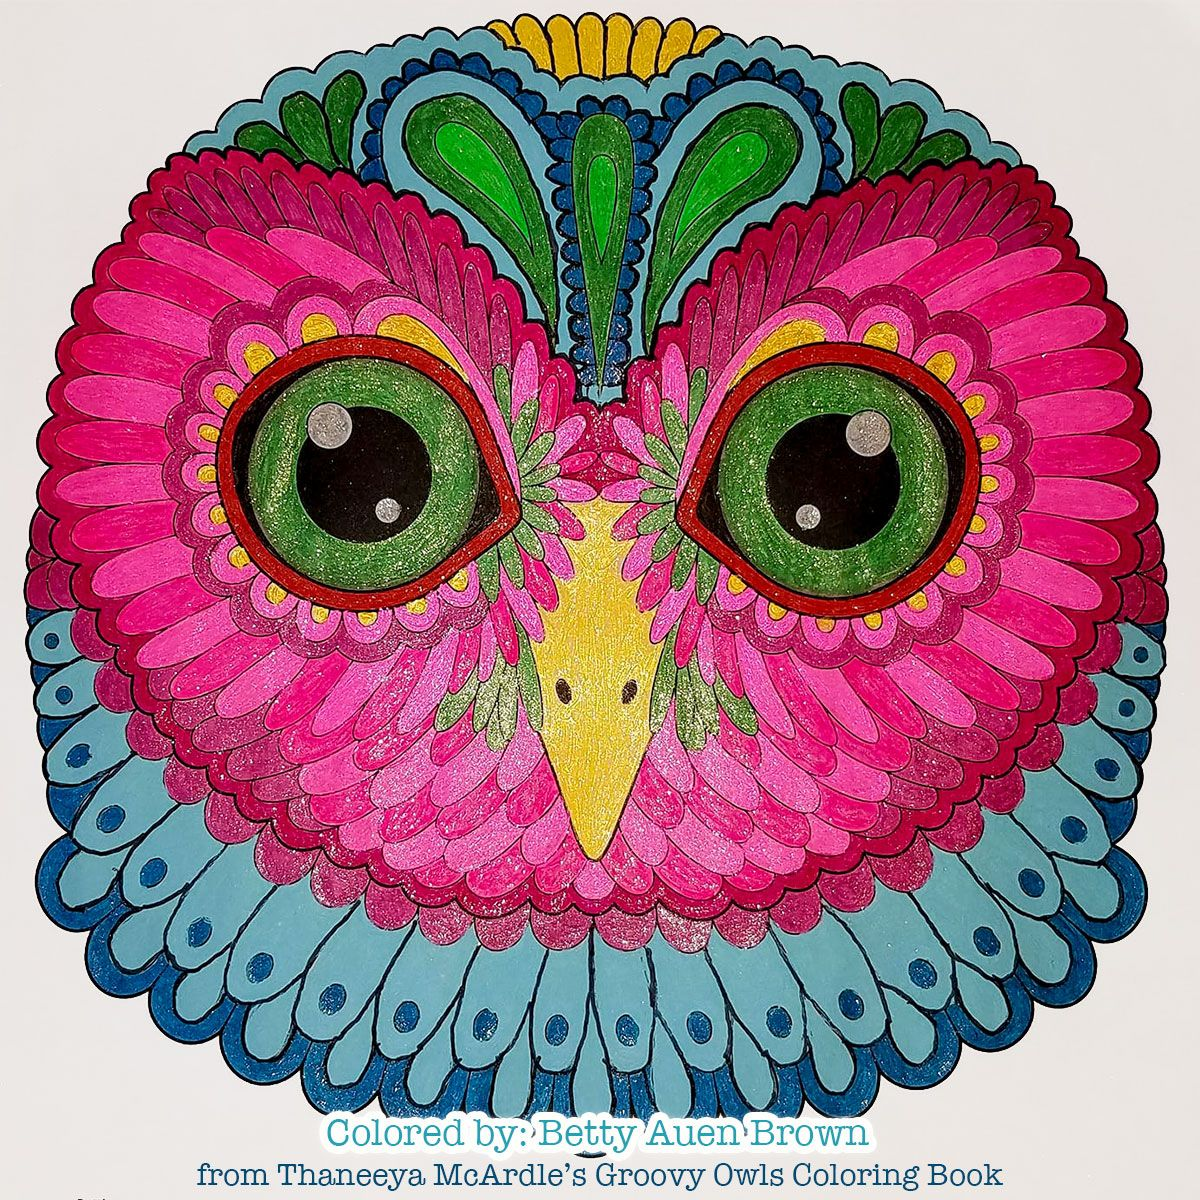 Owl Coloring Page From Thaneeya Mcardle S Groovy Owls